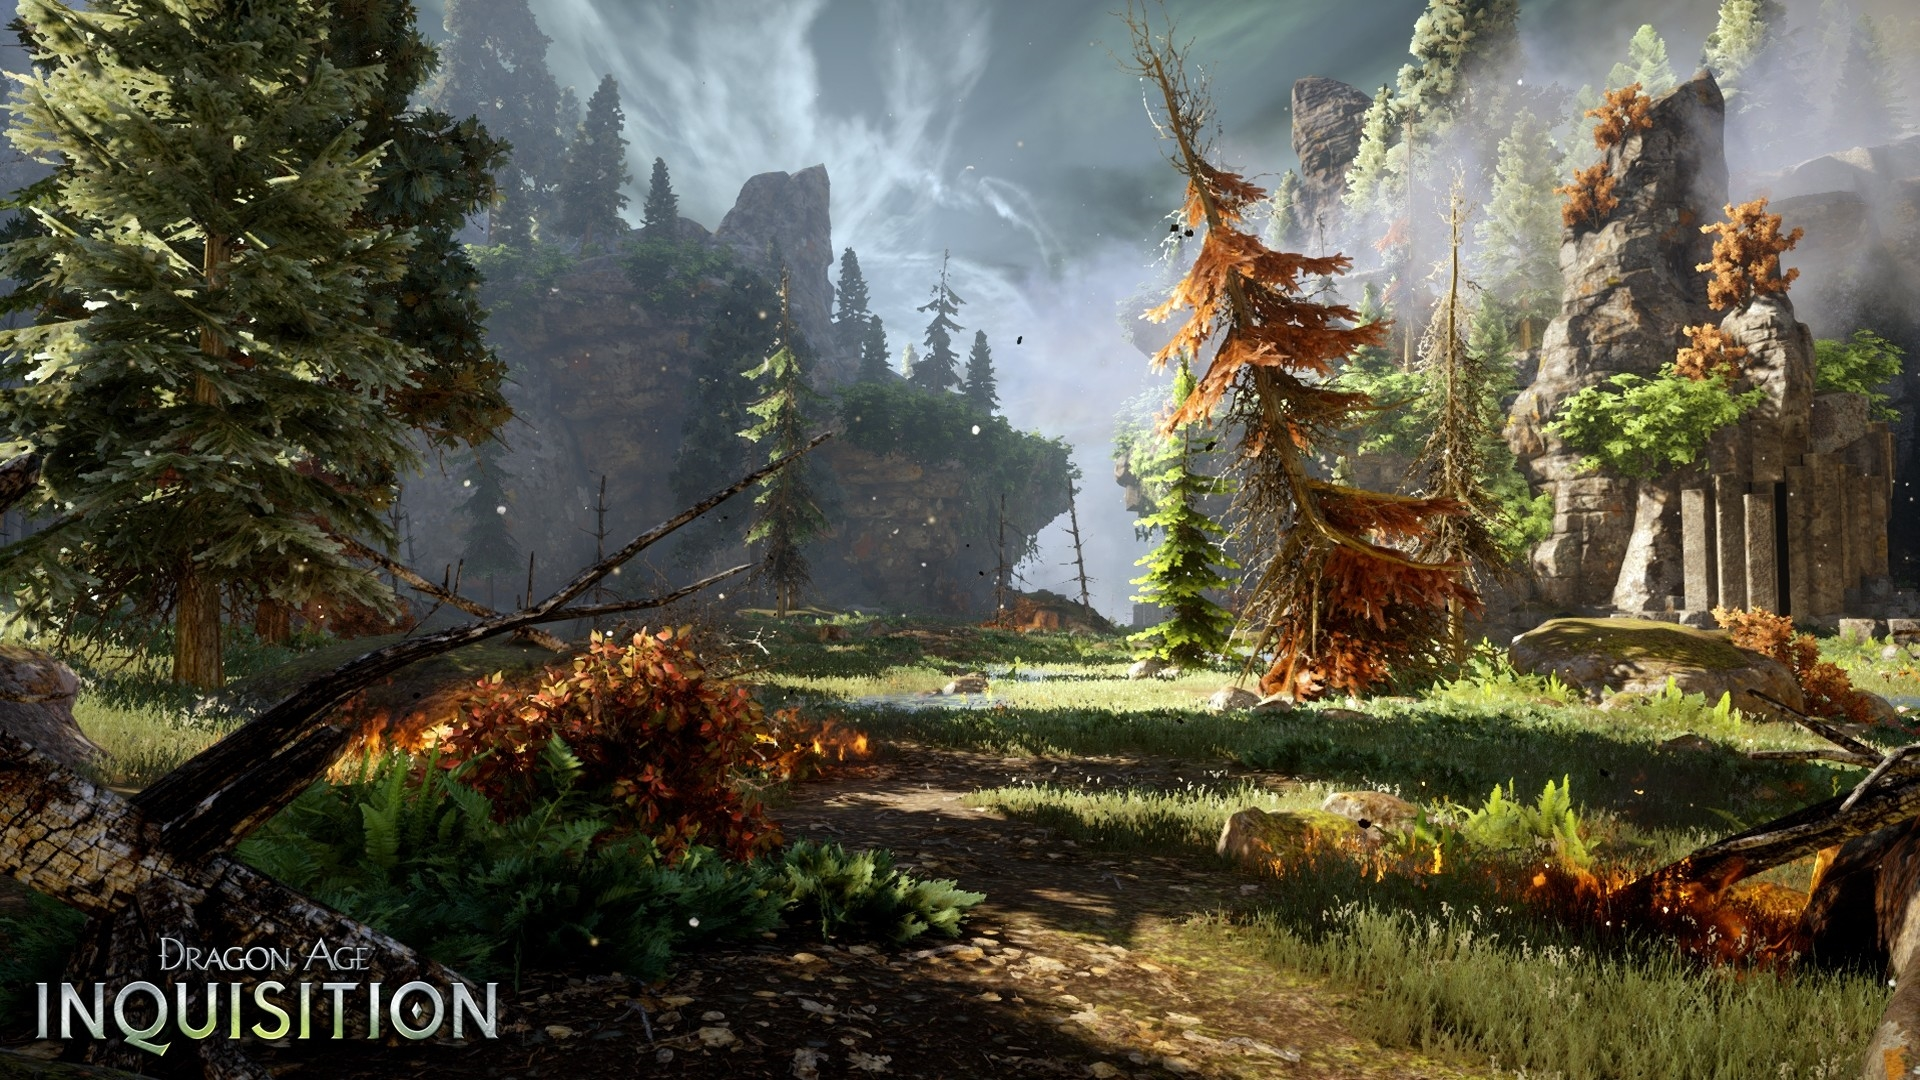 Dragon Age Inquisition download free wallpaper for pc in hd